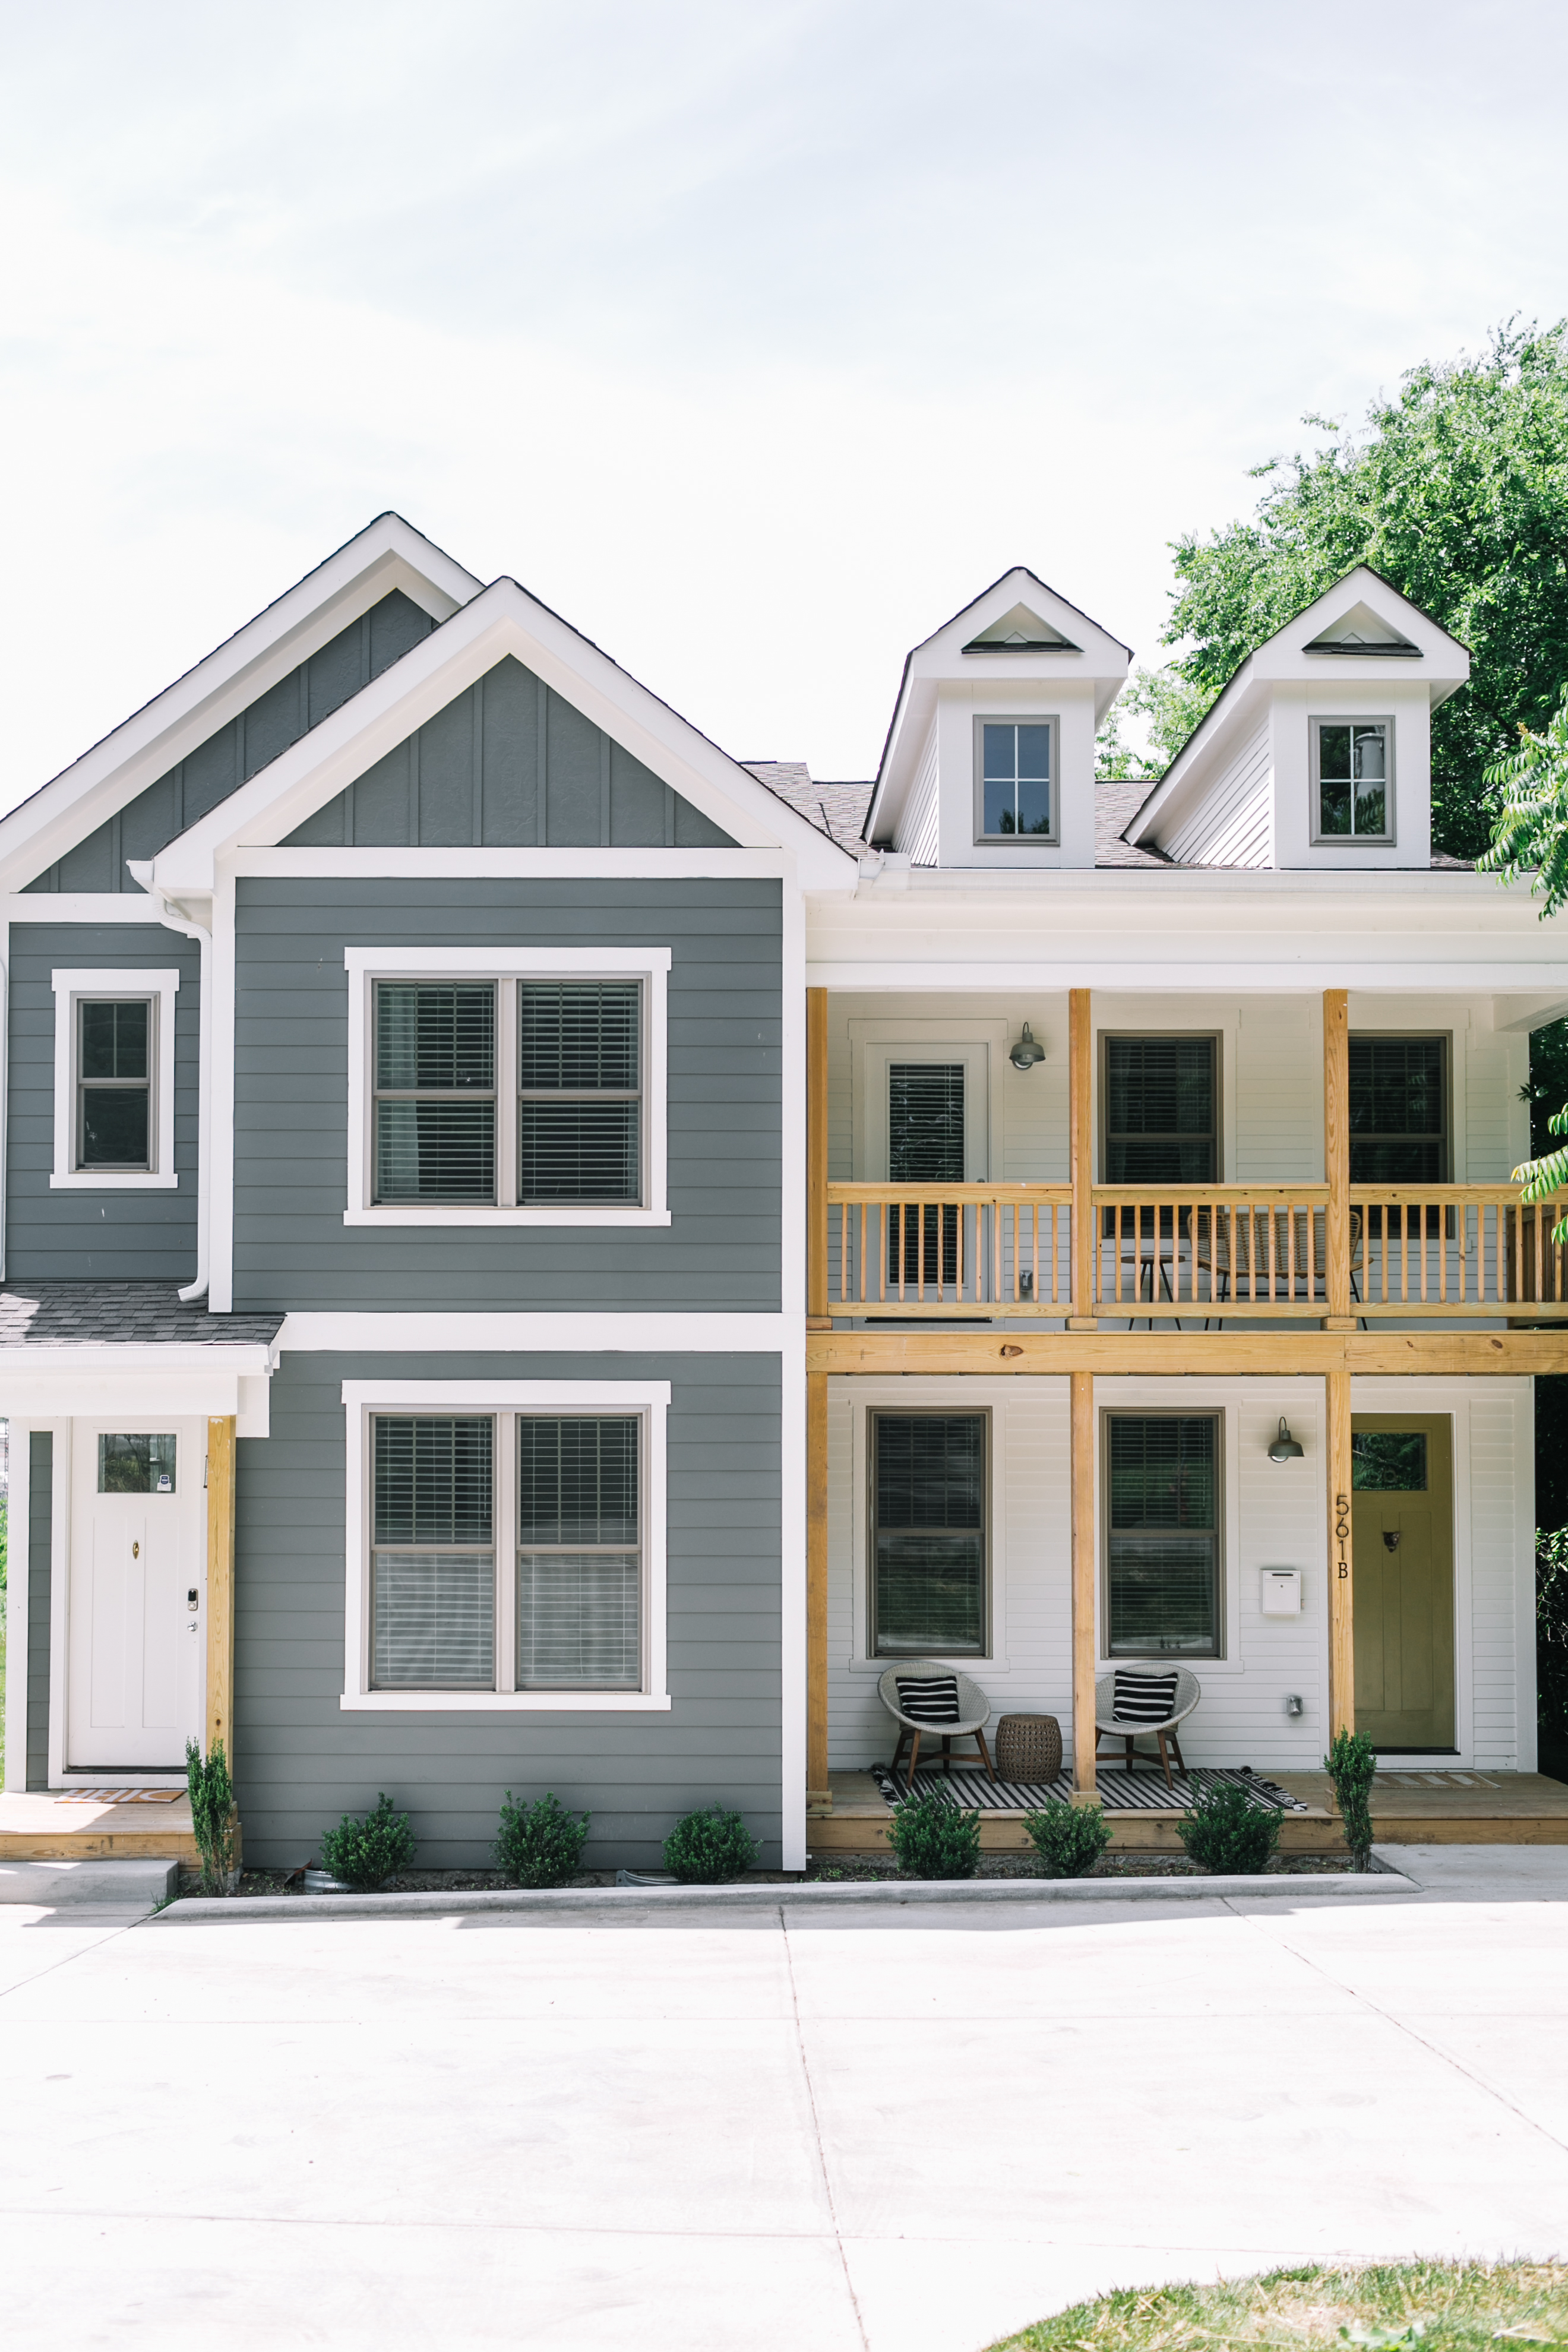 Our Nashville Duplex is Available to Rent!